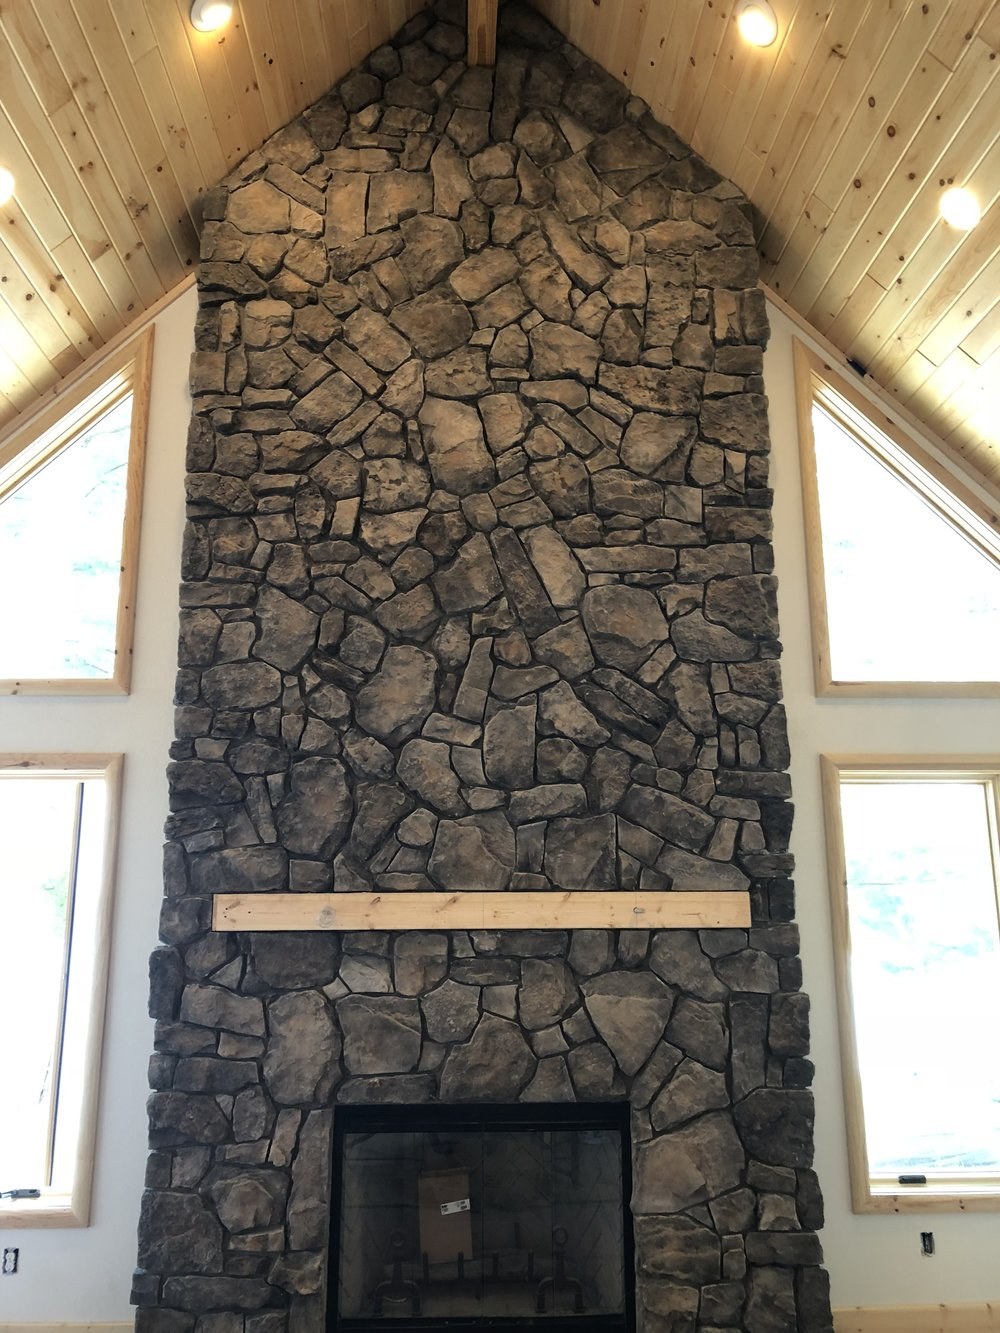 This beautiful stonework was recently completed on our newly custom built home on the West Side of Higgins. This Boulder Creek stone is an Italian Fieldstone in the color Tivoli.